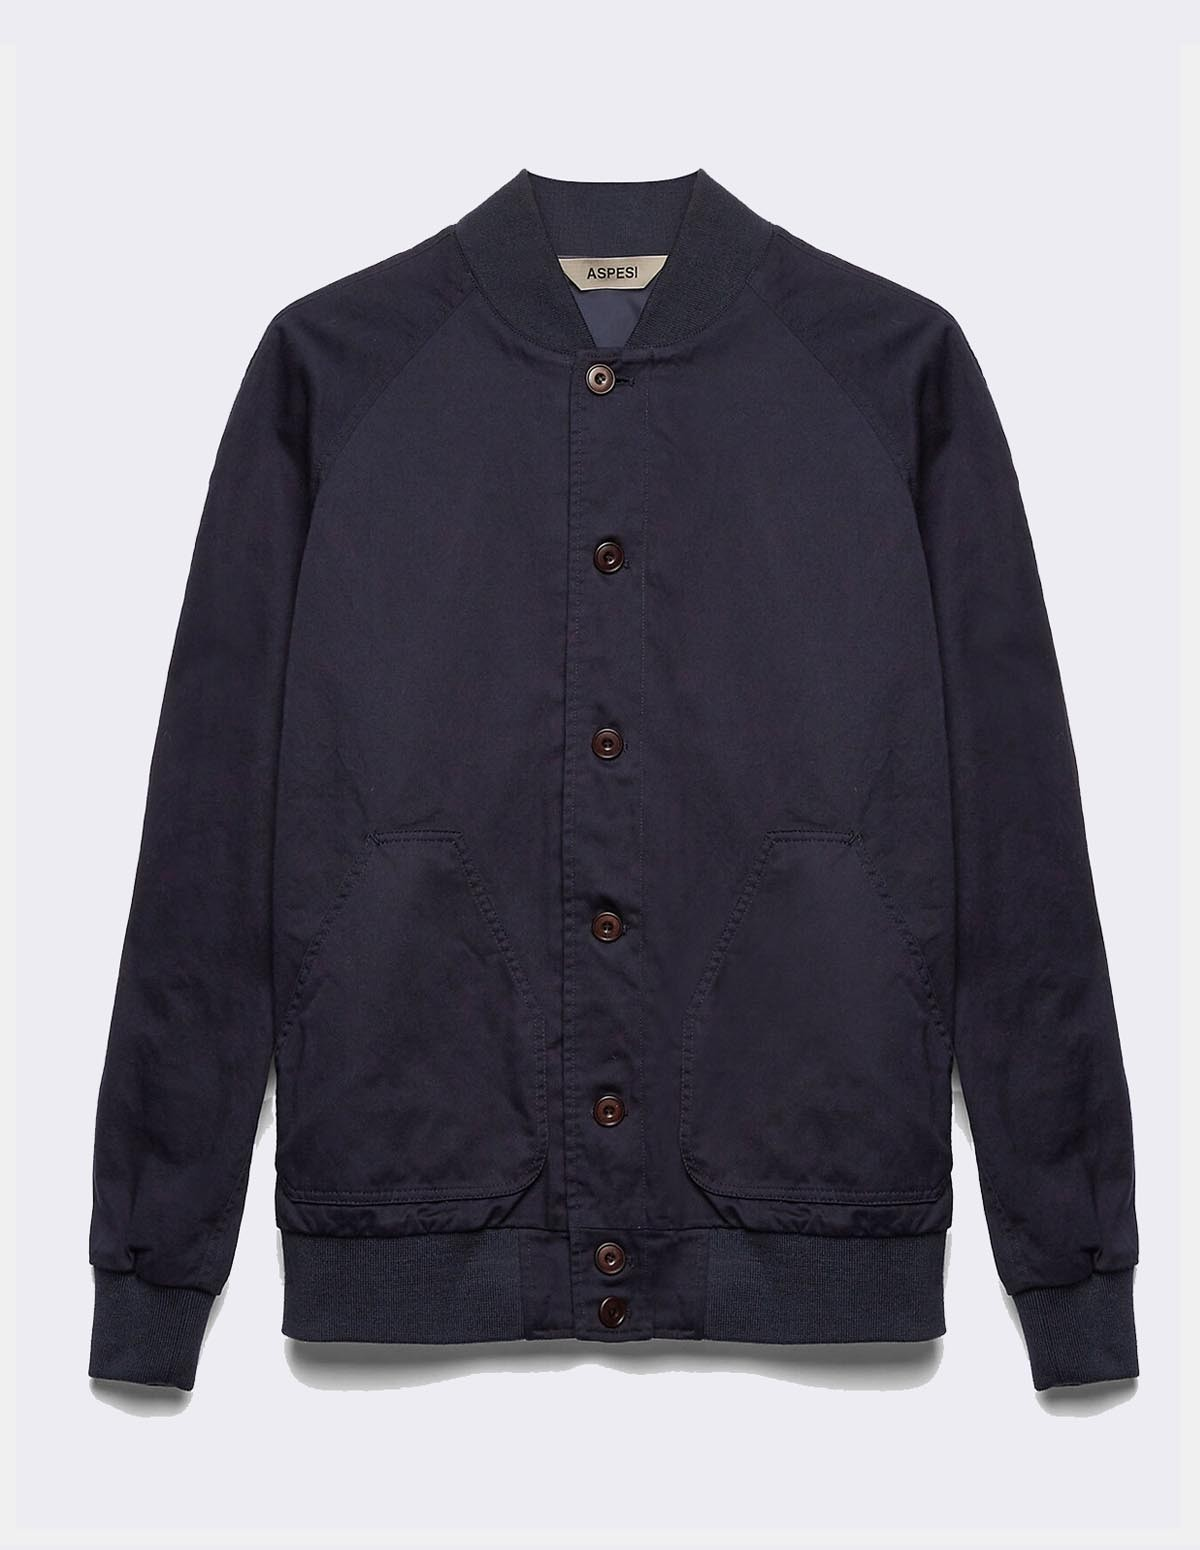 Aspesi Men's Jacket Oxford - NAVY